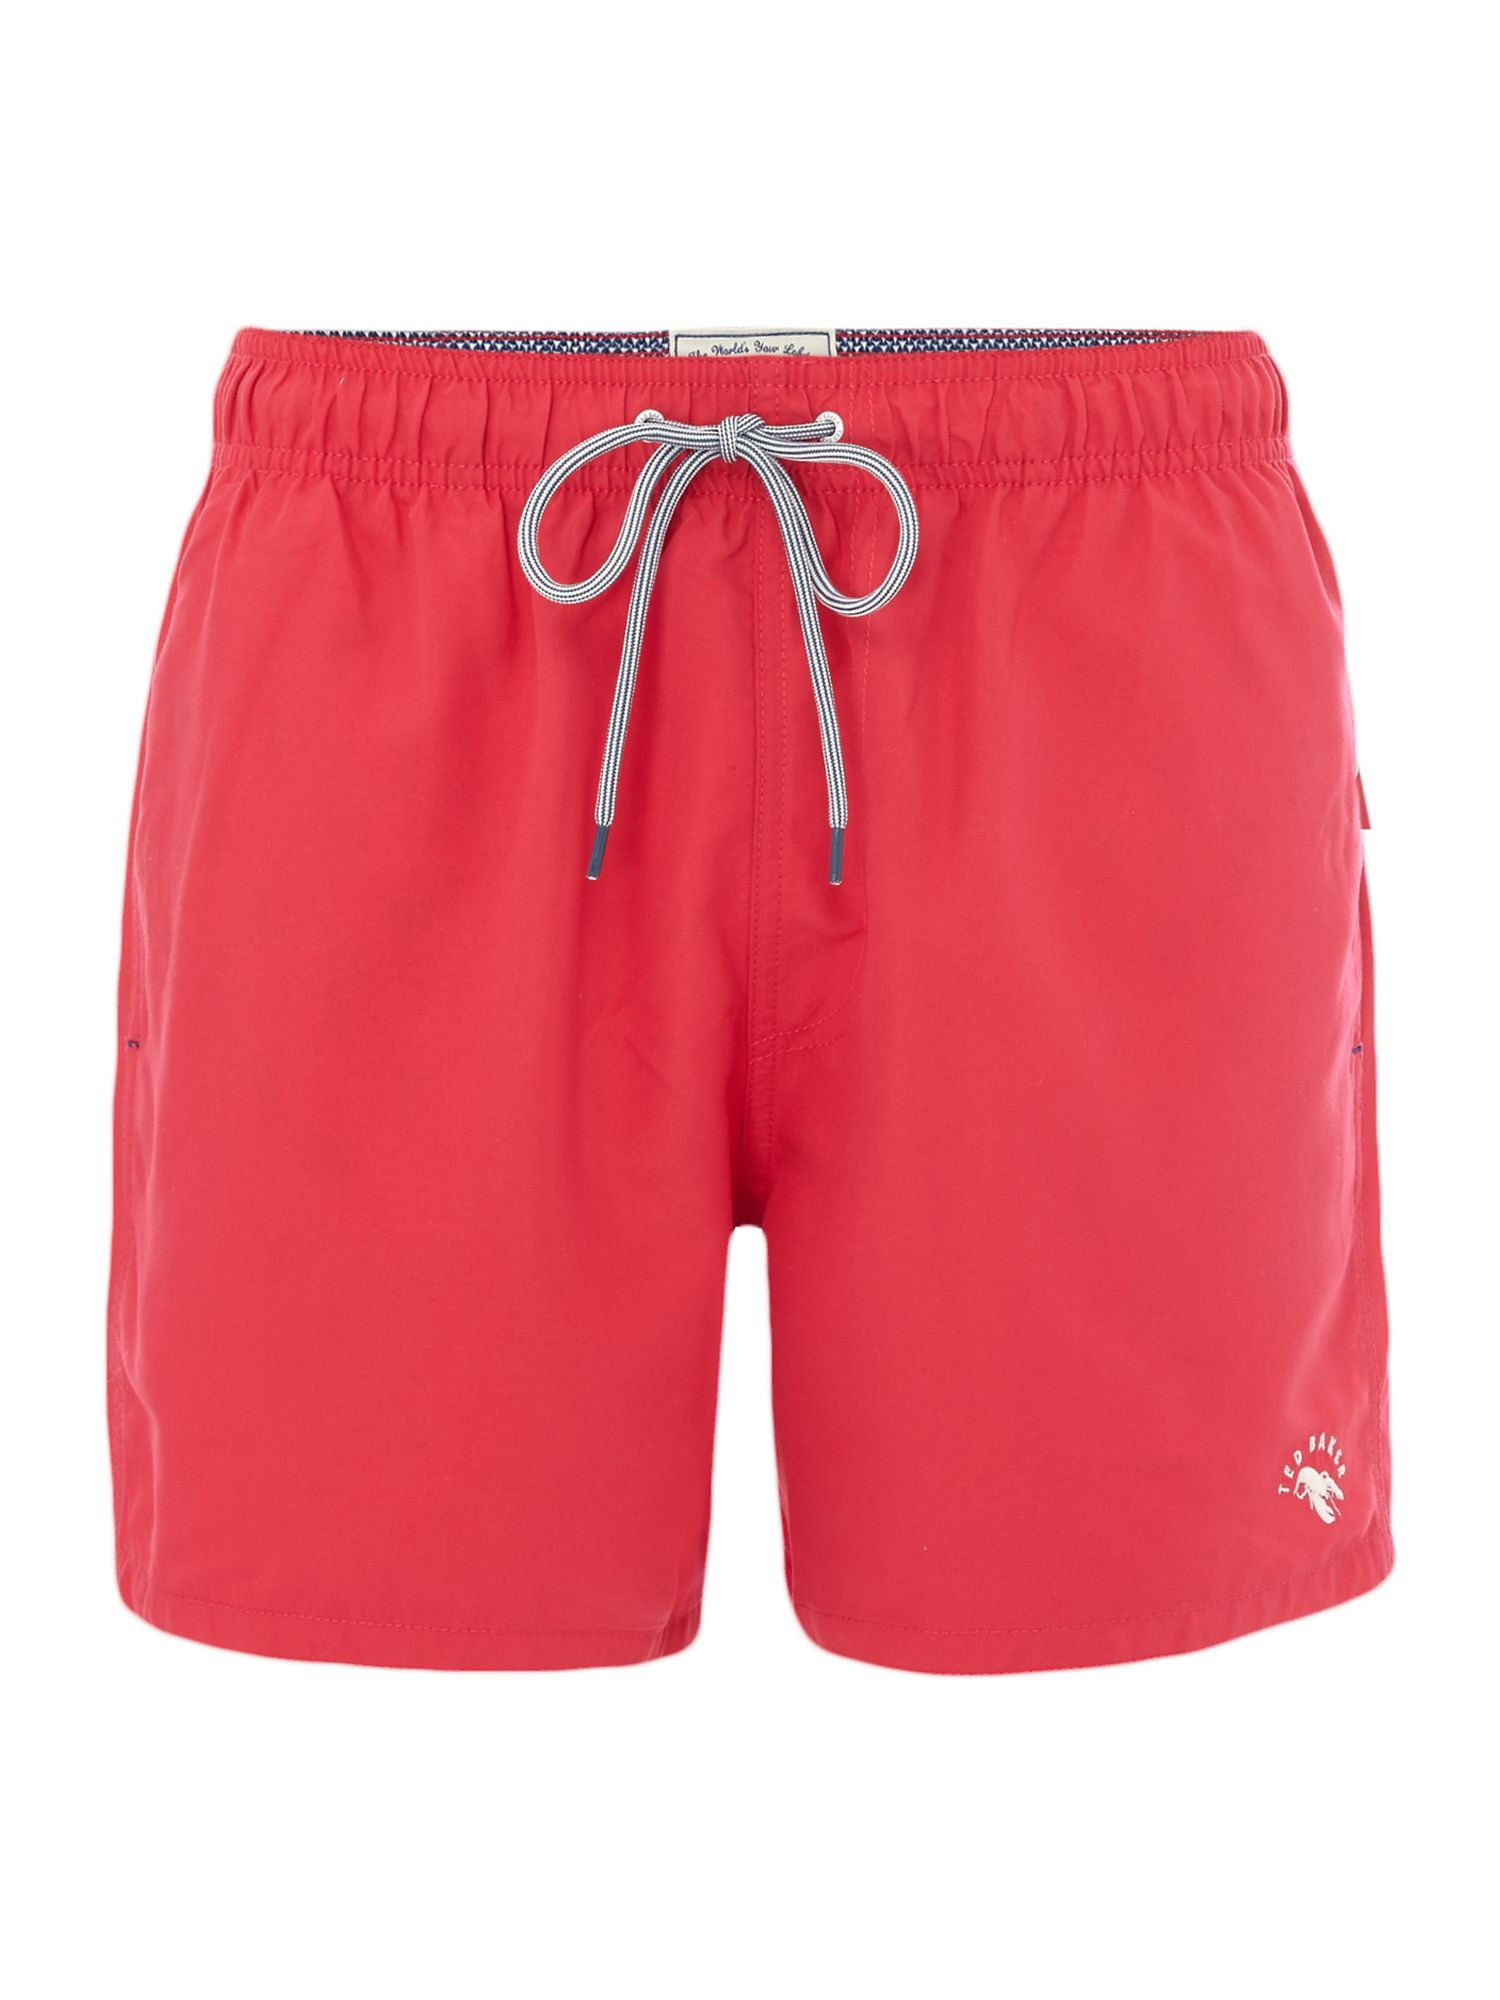 Men's Ted Baker Solid Colour Swim Short, Pink